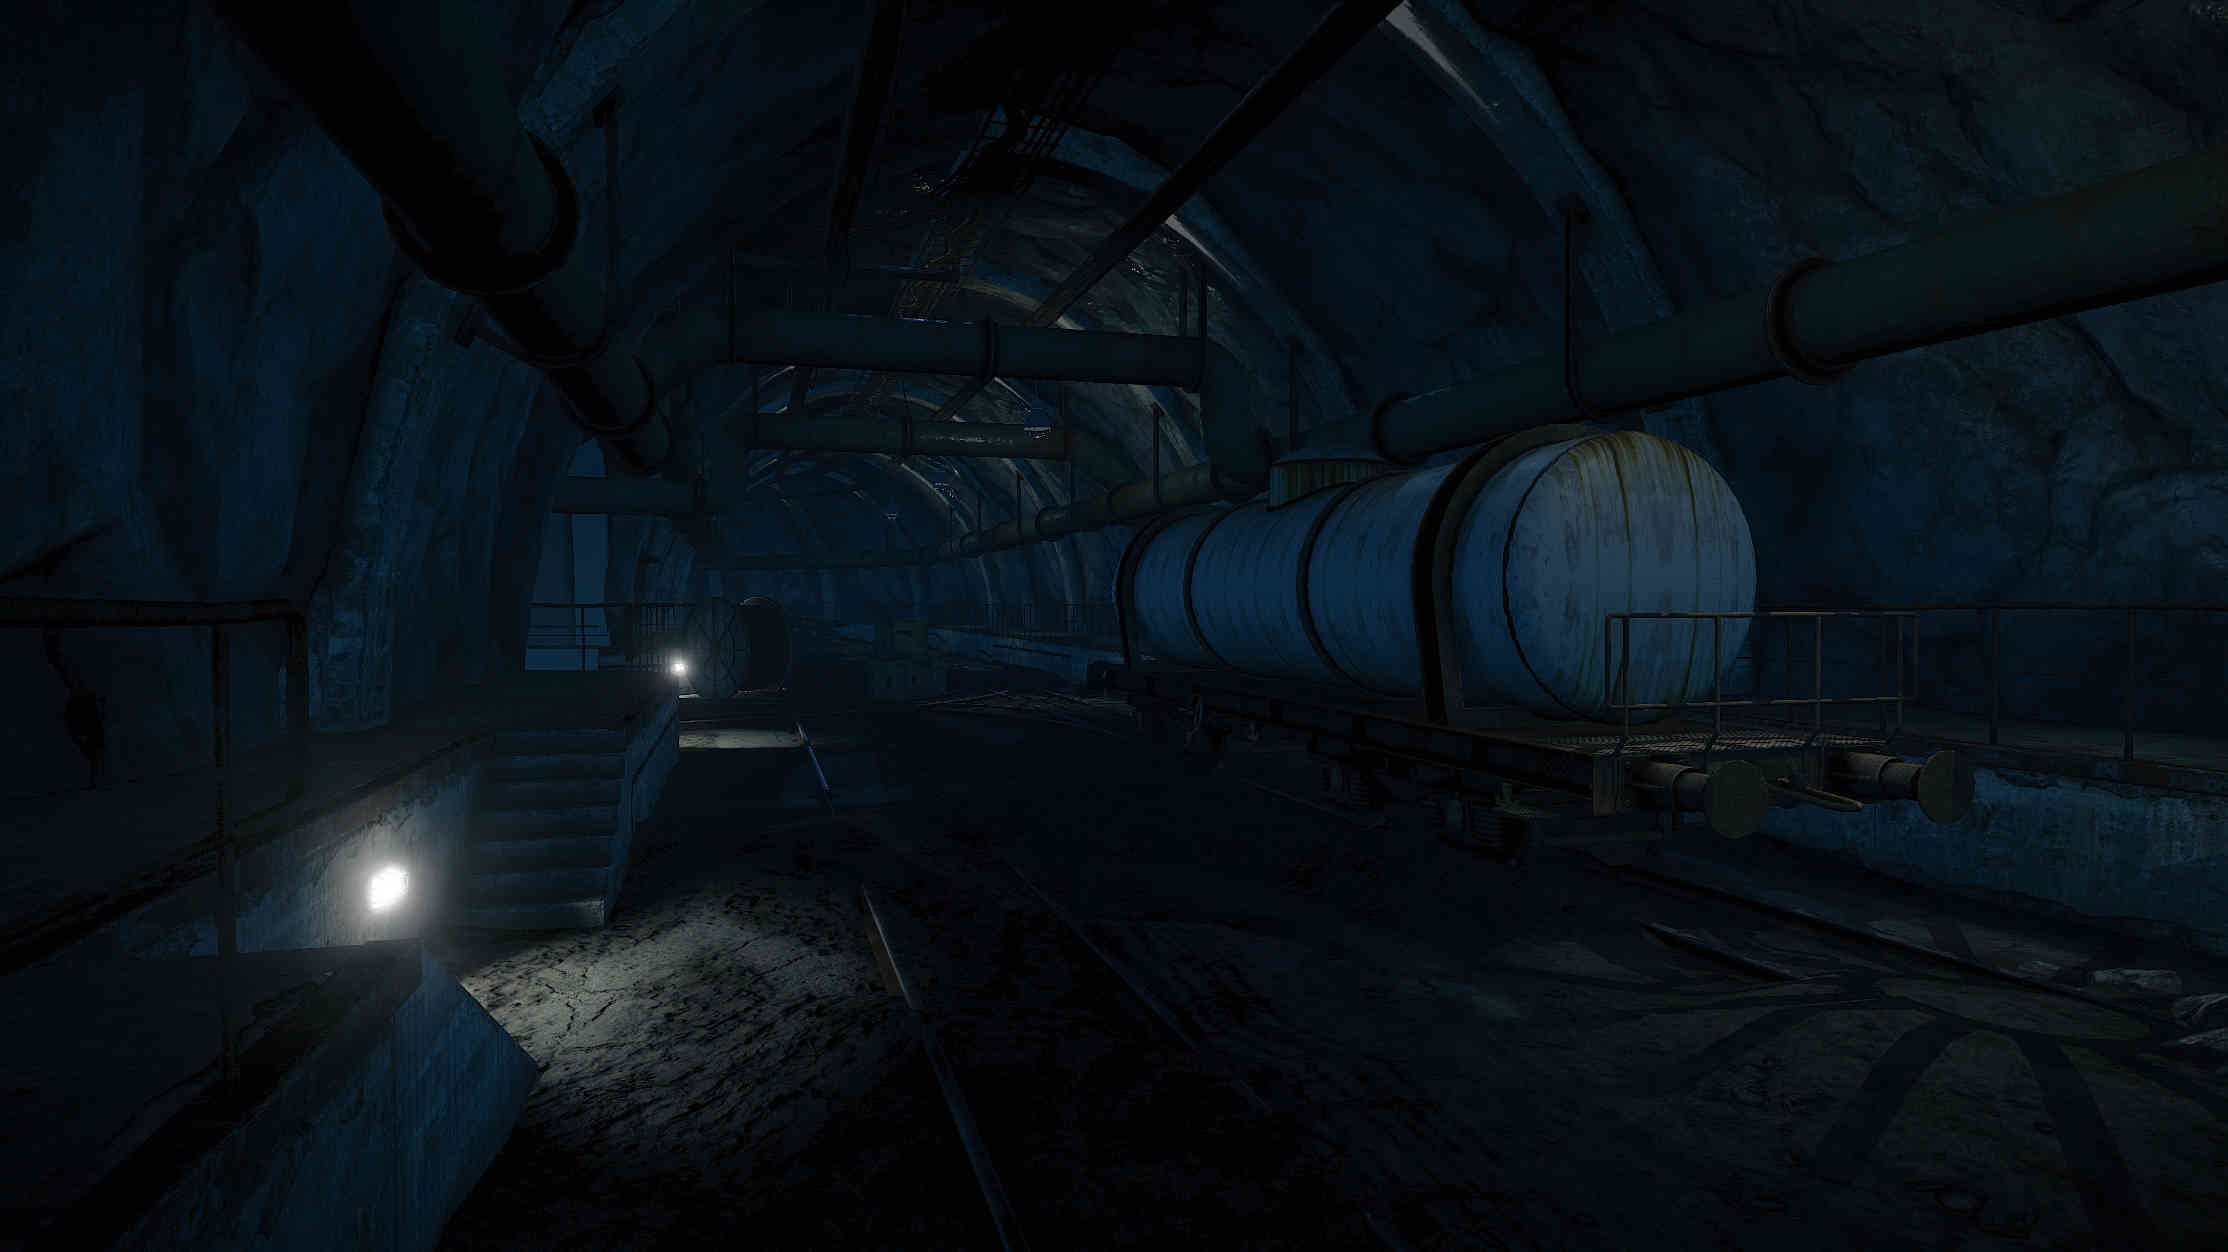 rust military tunnels